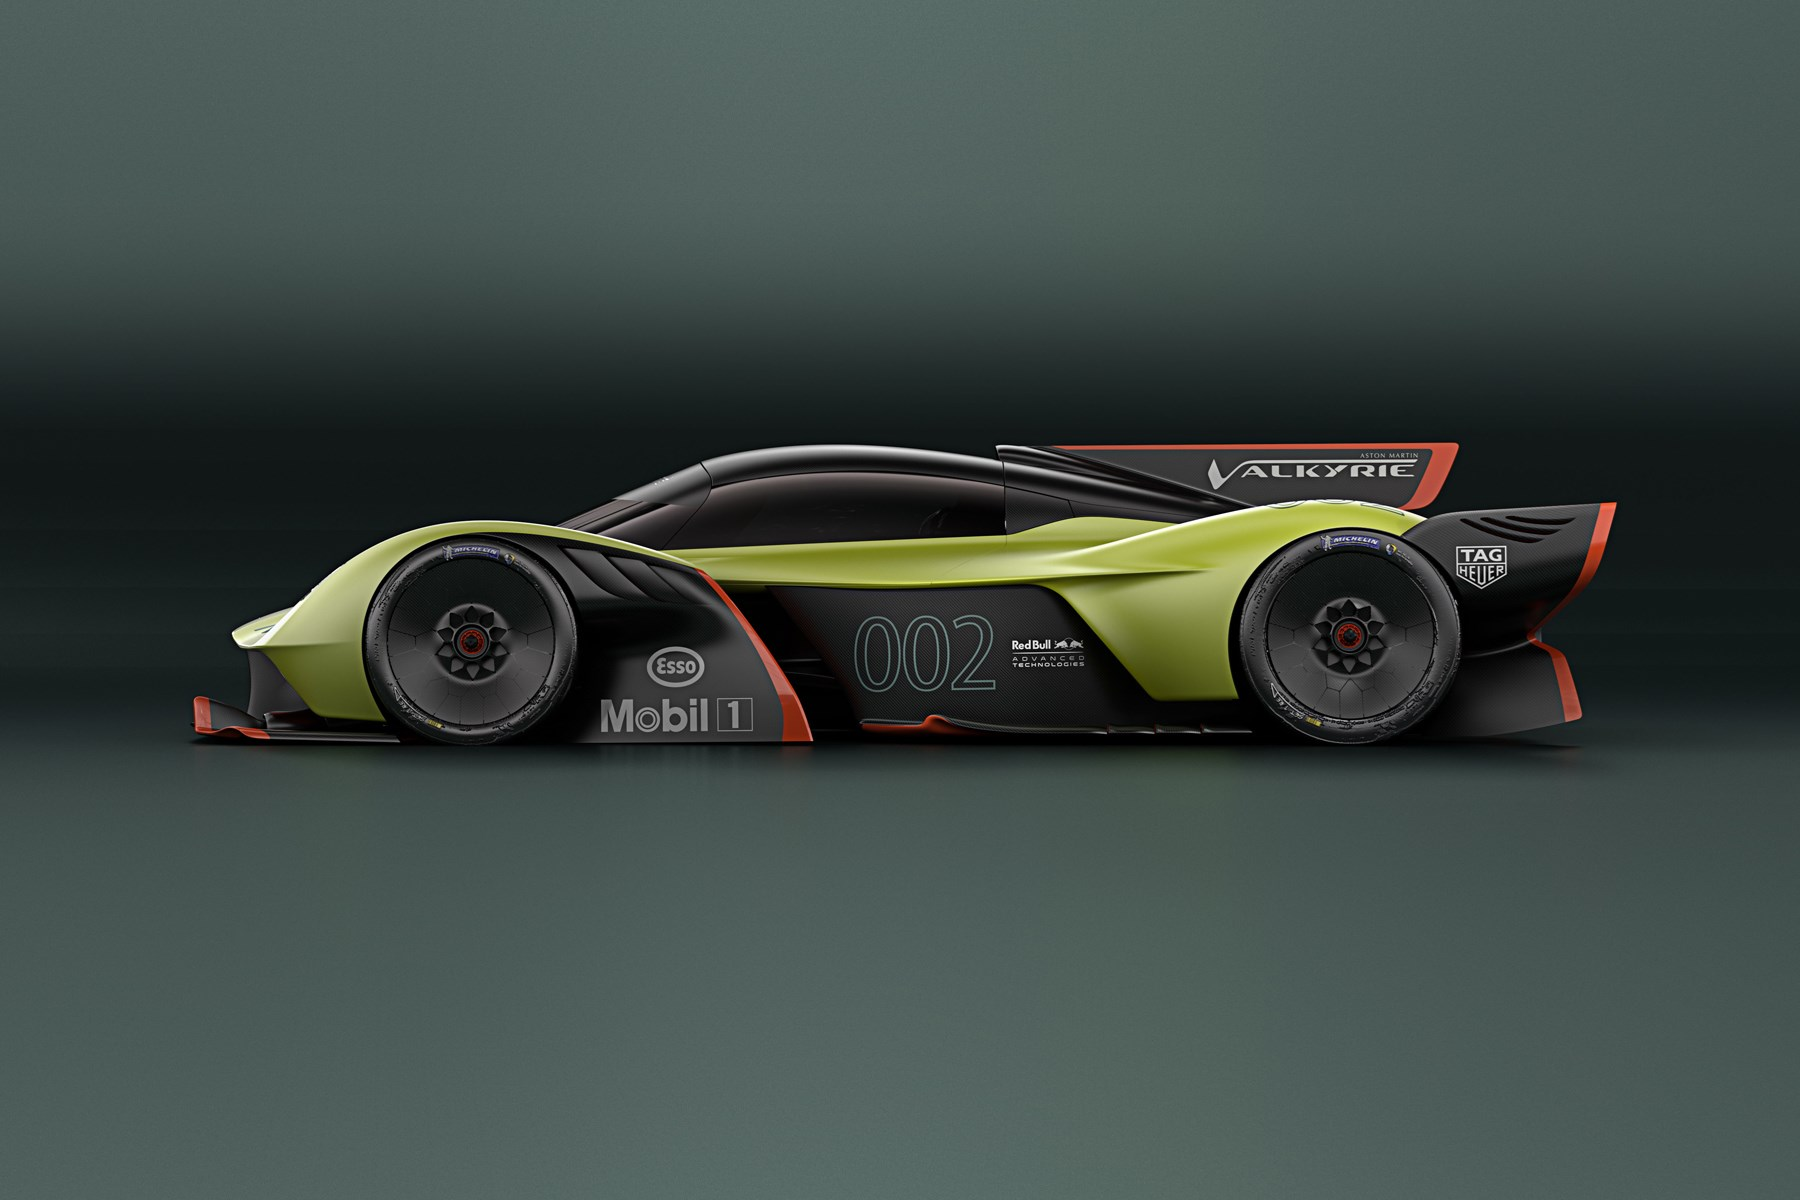 aston martin valkyrie amr pro revealed in picturescar magazine